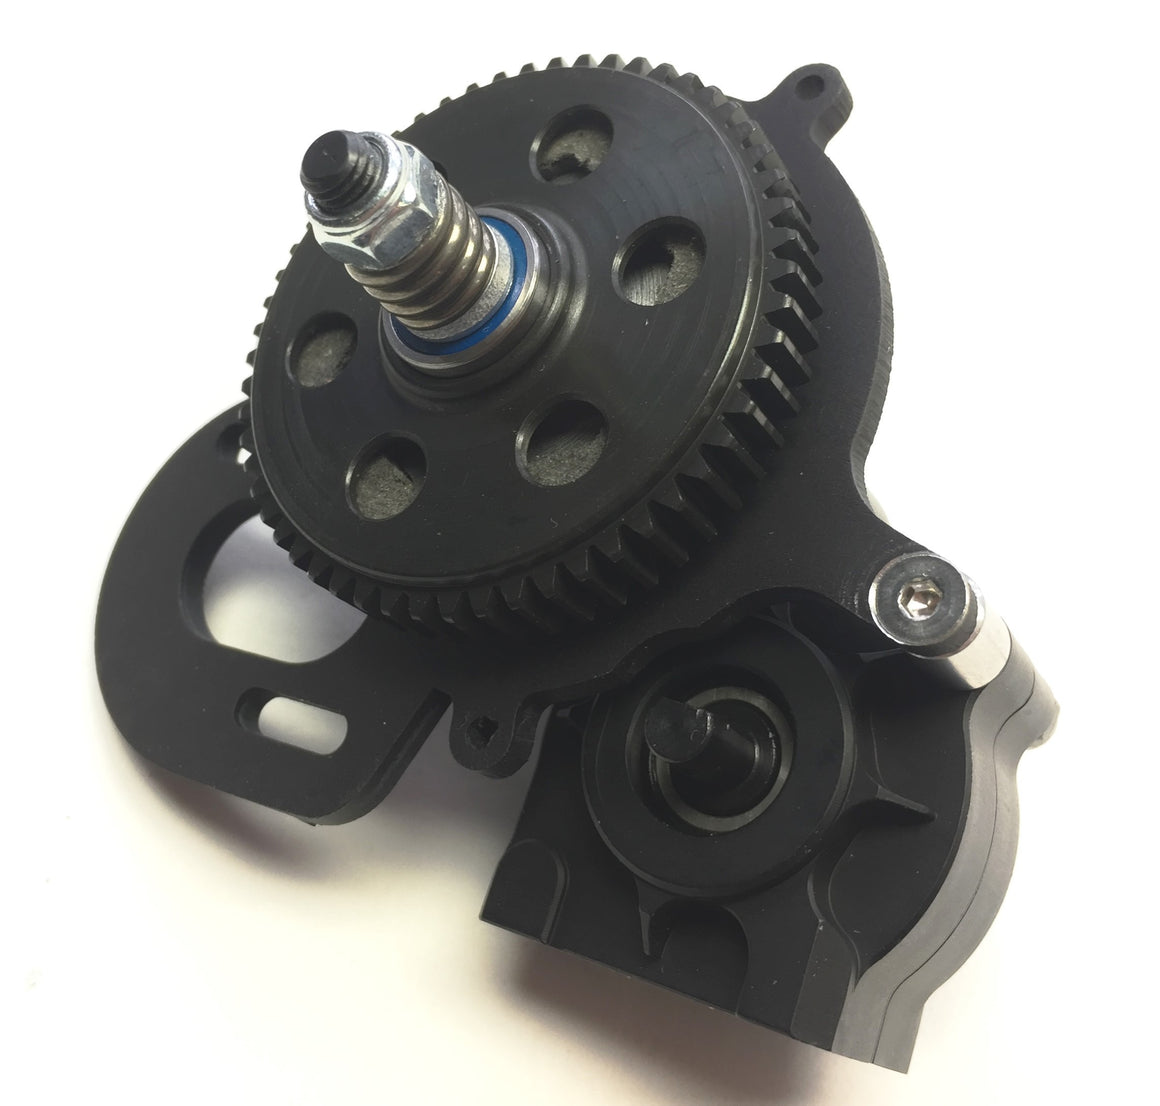 SuperShafty Bombproof Transmission for Axial SCX10 & SCX10.2 (5mm OutPuts)